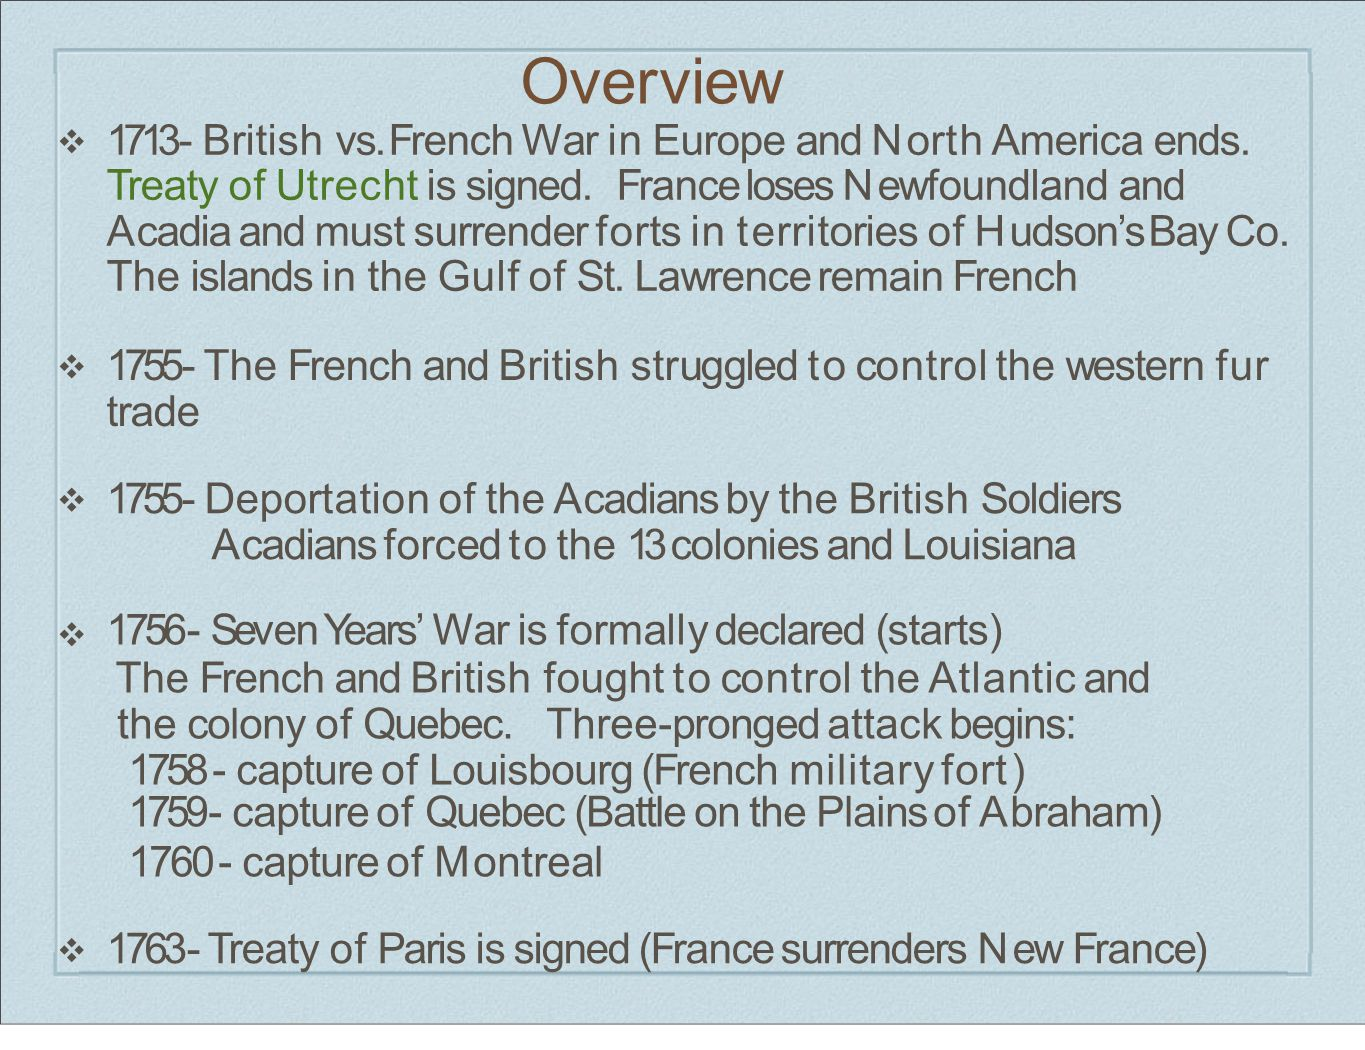 After the War of the Spanish Succession in Europe and Queen Anne's War in North America were over, the Treaty of Utrecht (1713) was signed.The result was that France had to surrender a number of territories to Britain.